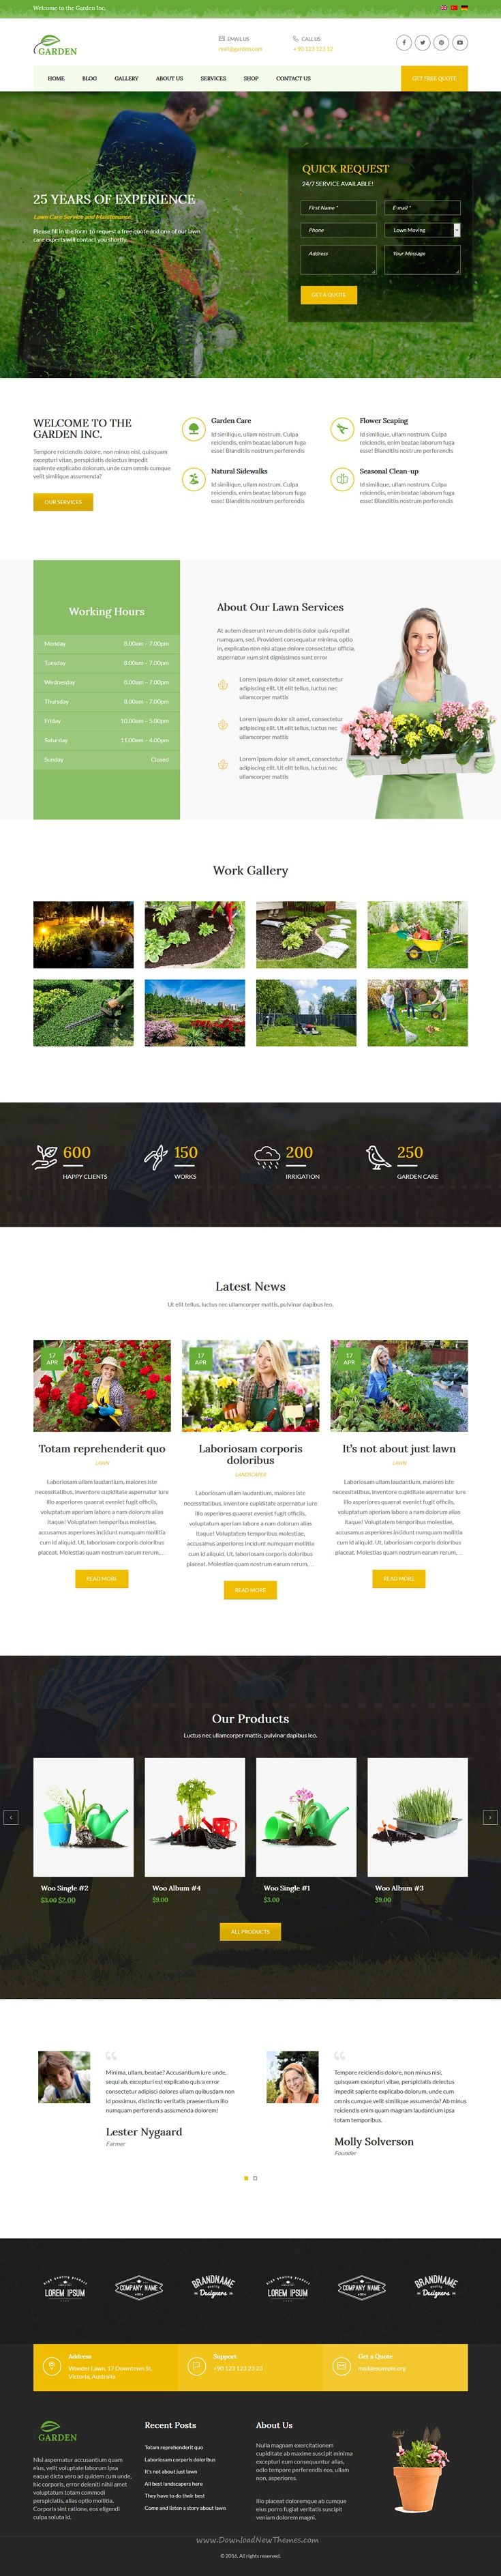 The 69 best agriculture web images on Pinterest | Design web ...